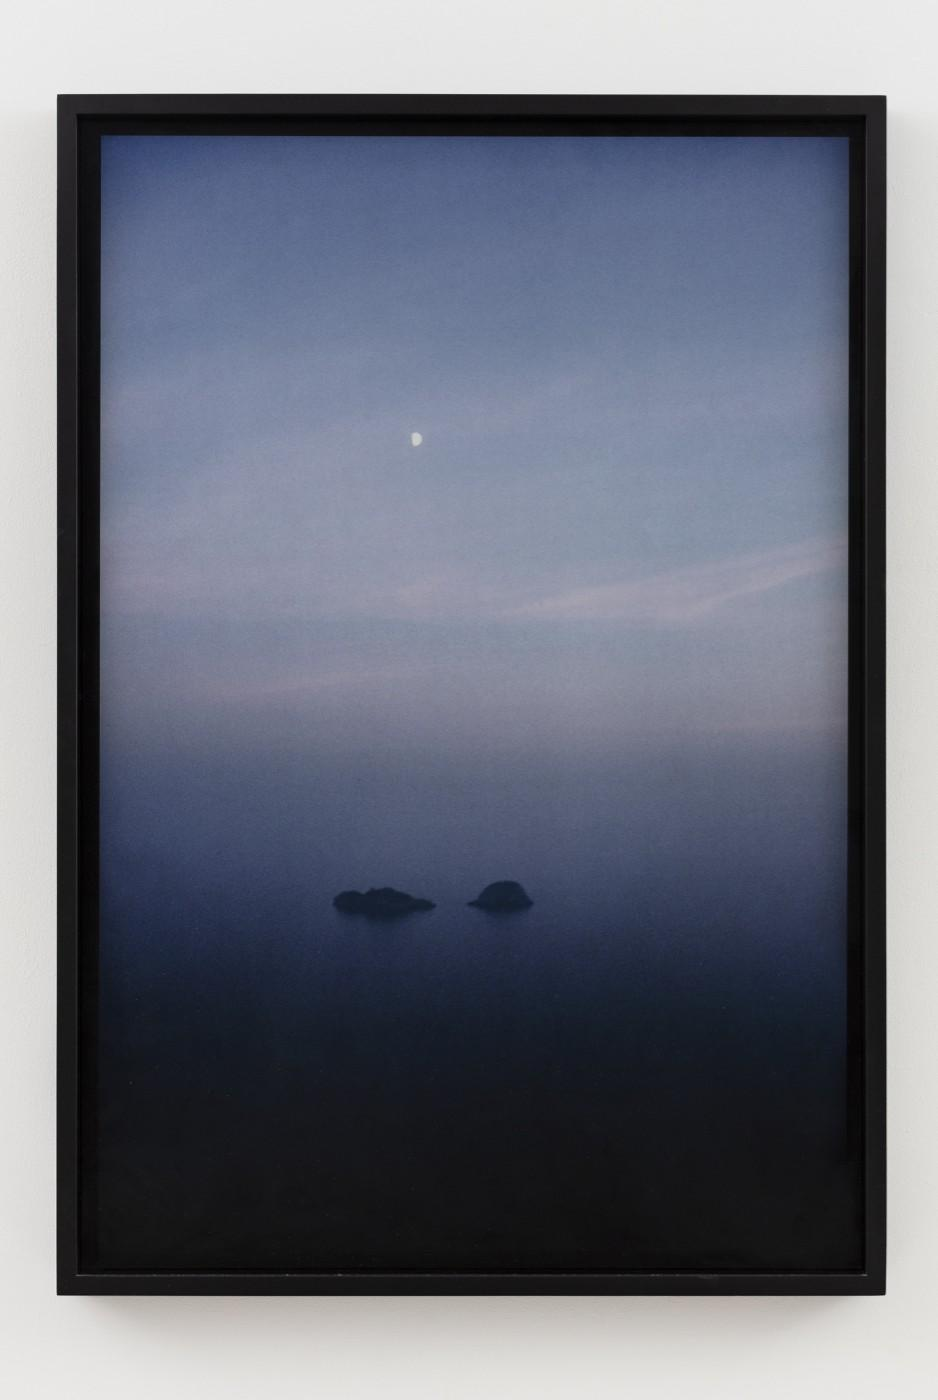 Nan Goldin (American, b. 1953), Half moon over I Galli, Positano, 1986